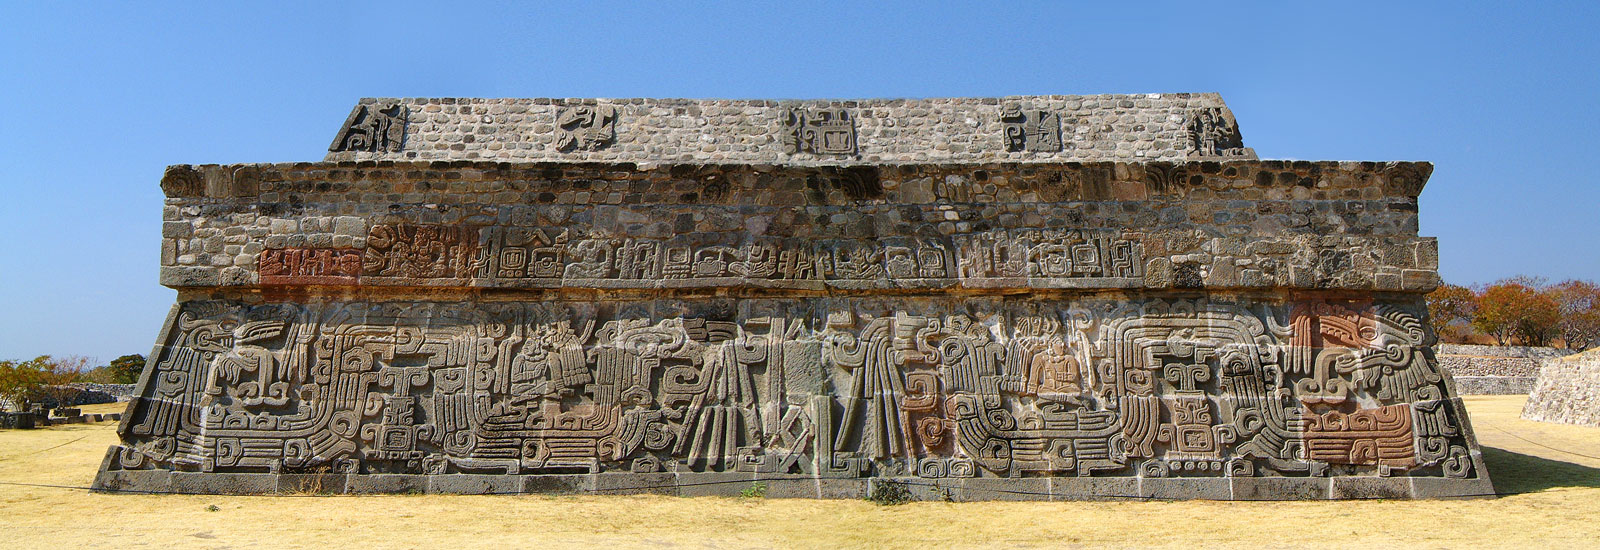 Pyramid of the Plumed Serpent at Xochicalco